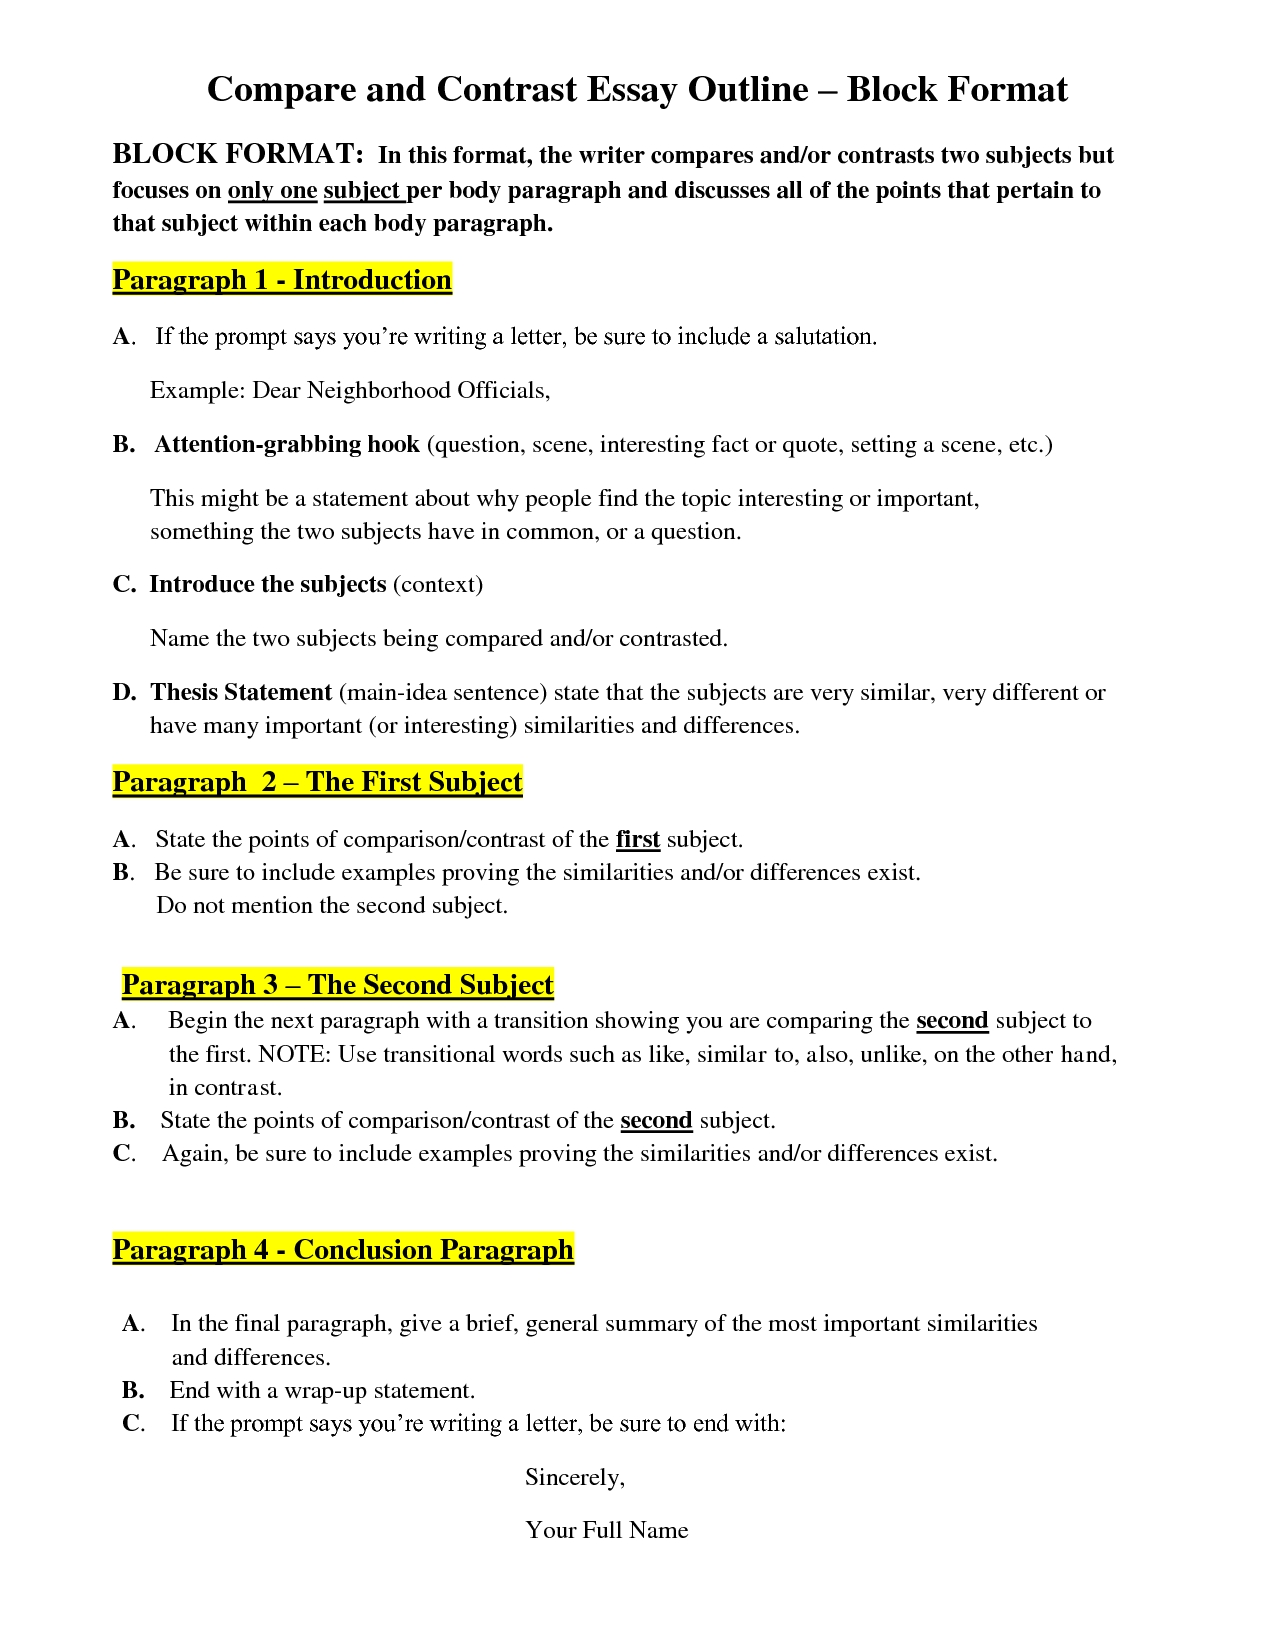 10 Unique Ideas For A Compare And Contrast Essay compare and contrast essay topic ideas for college essay thesis 2021